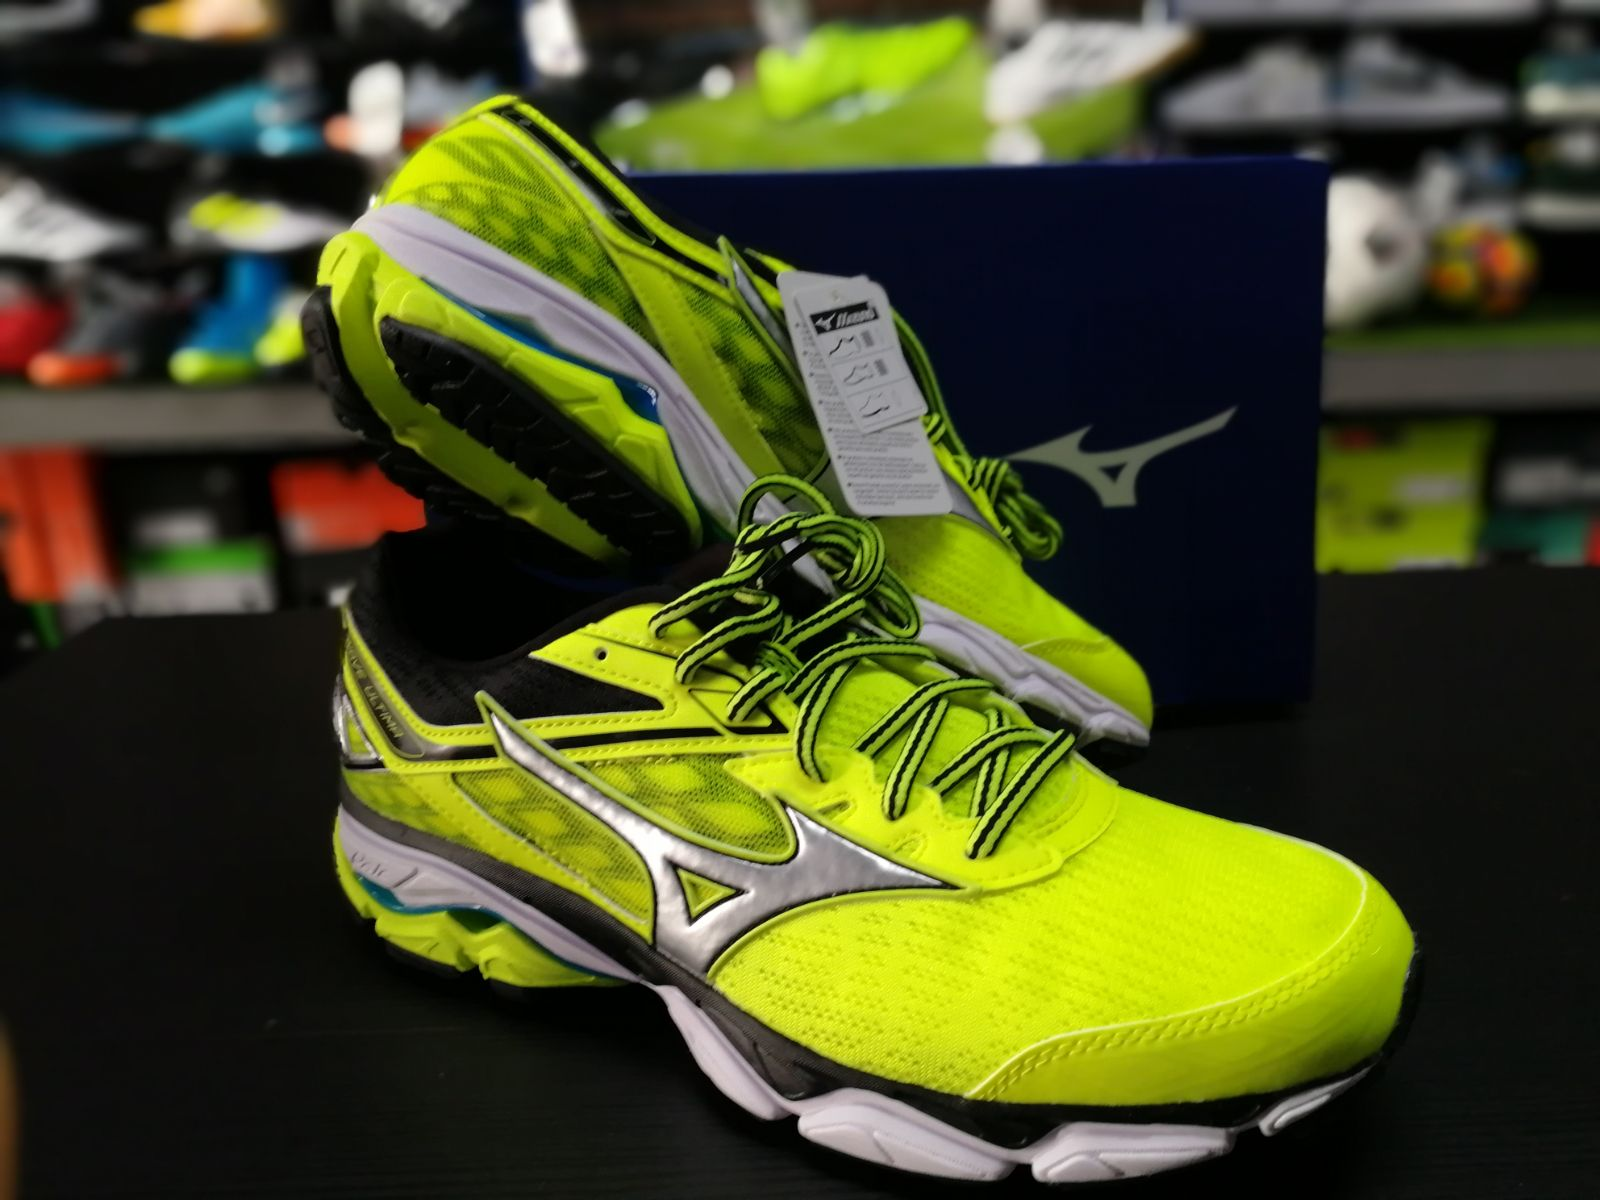 Ultima Chaussures Sneakers Mizuno 9 Shoes Wave Course Running De 4q1vzx1